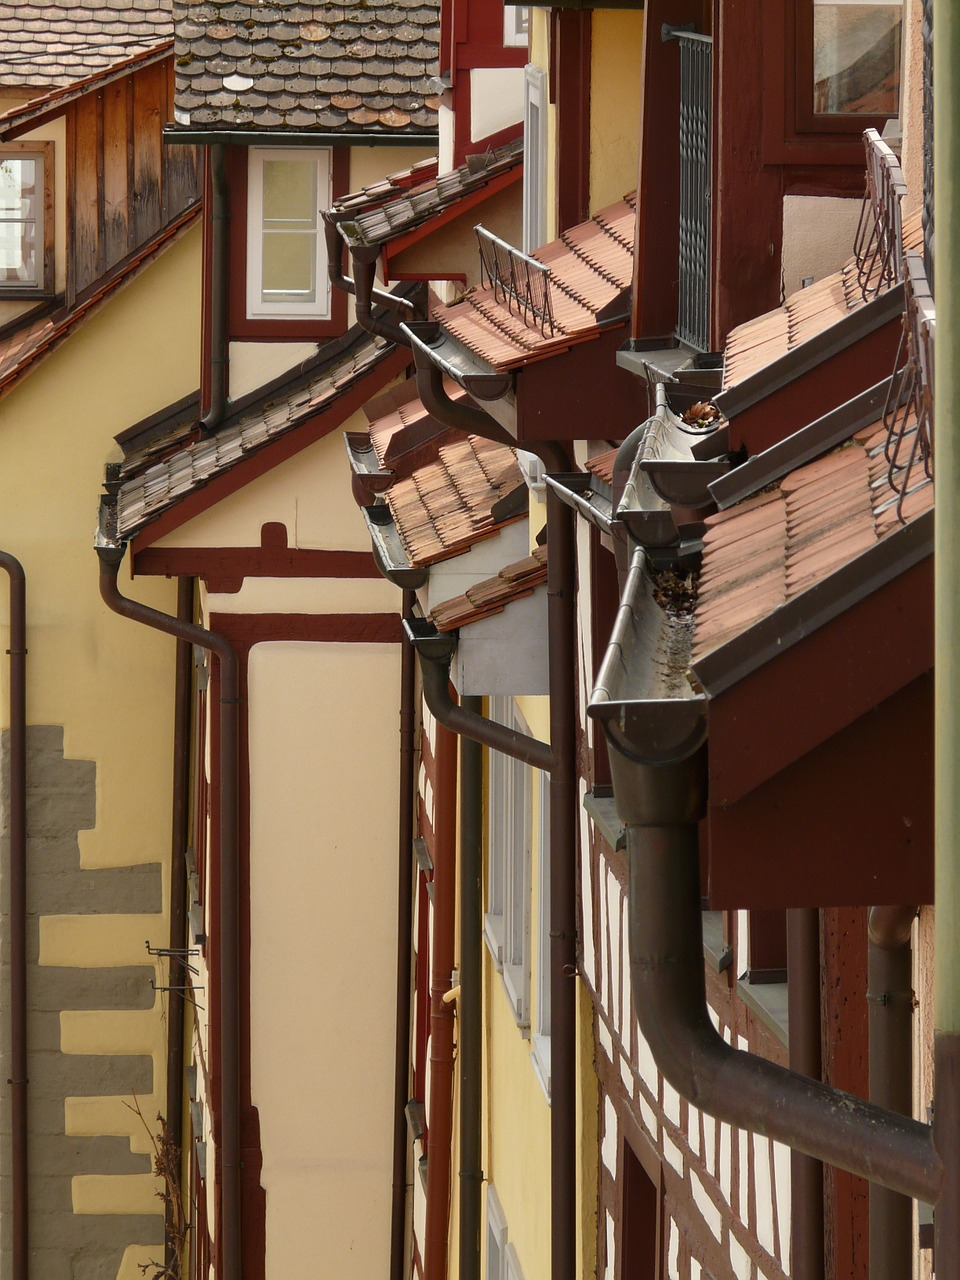 an image of guttering in summertime